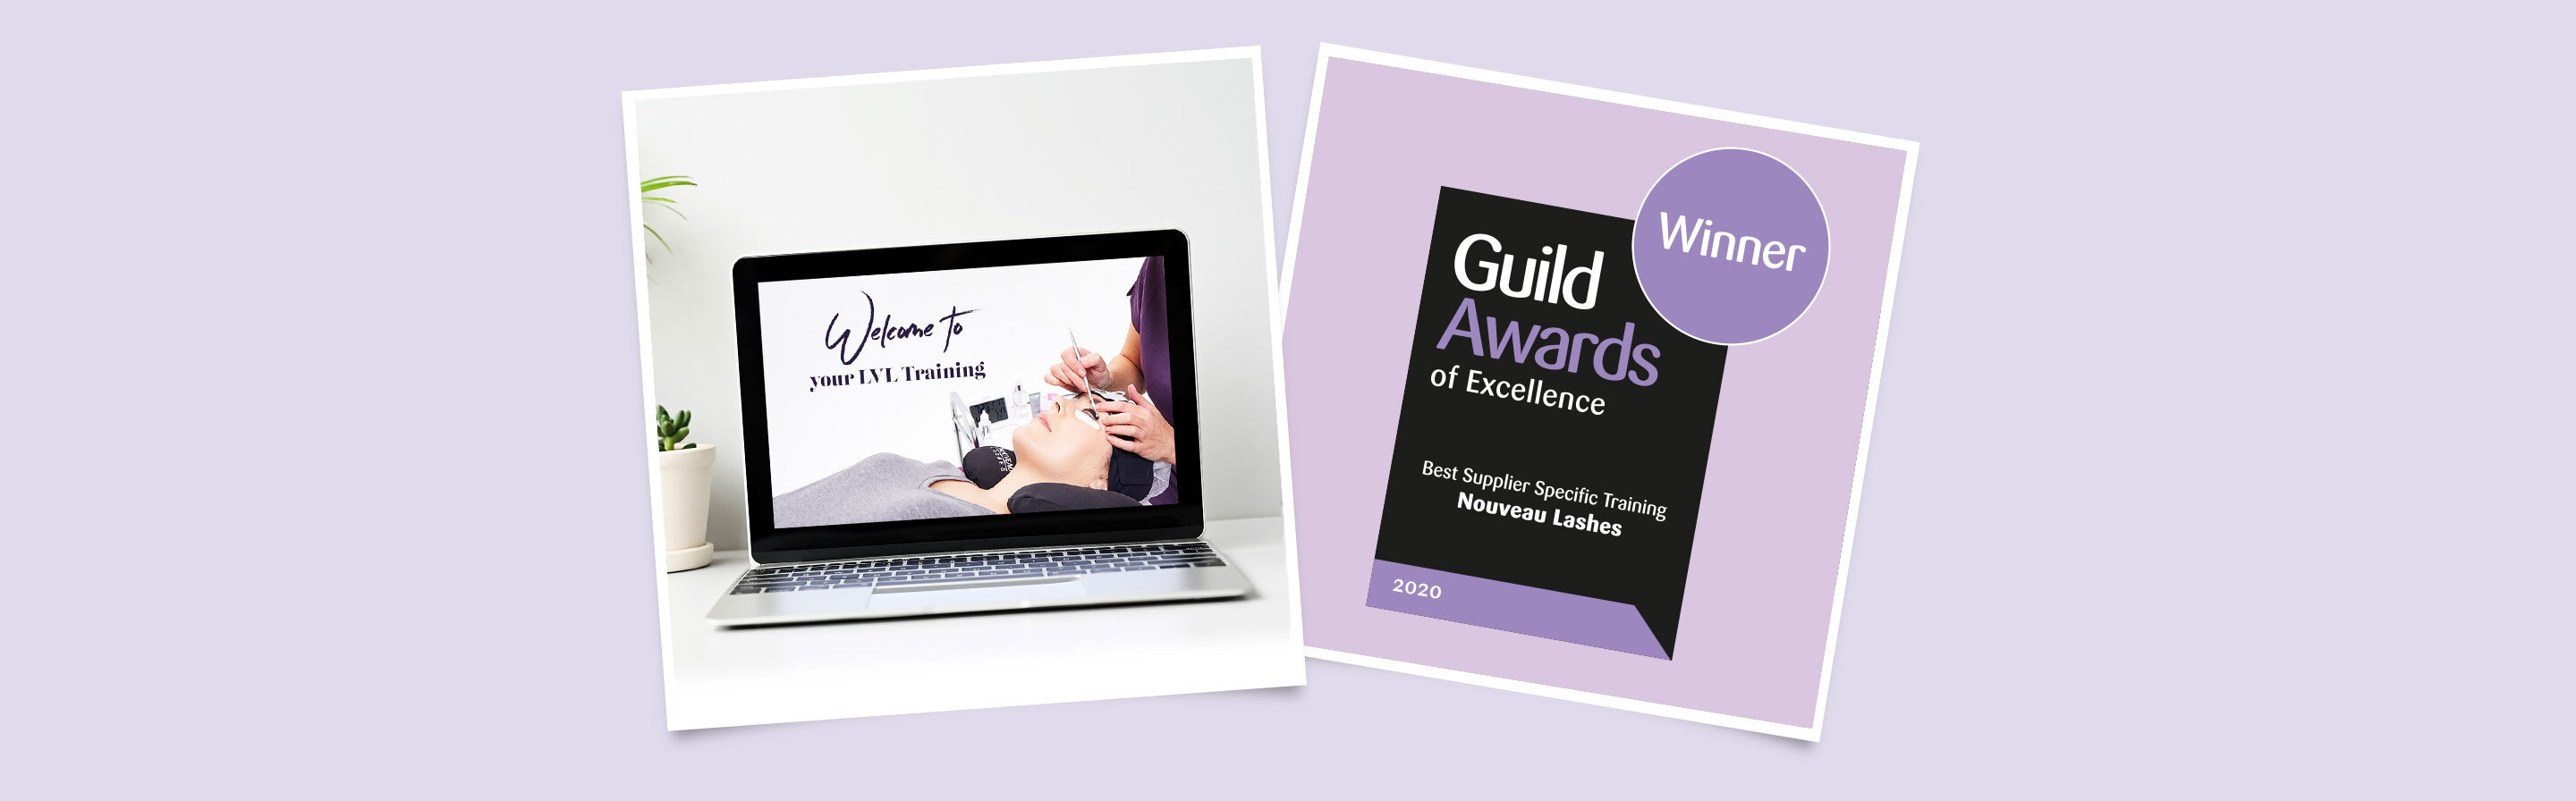 LVL lash lift training course; Guild Award